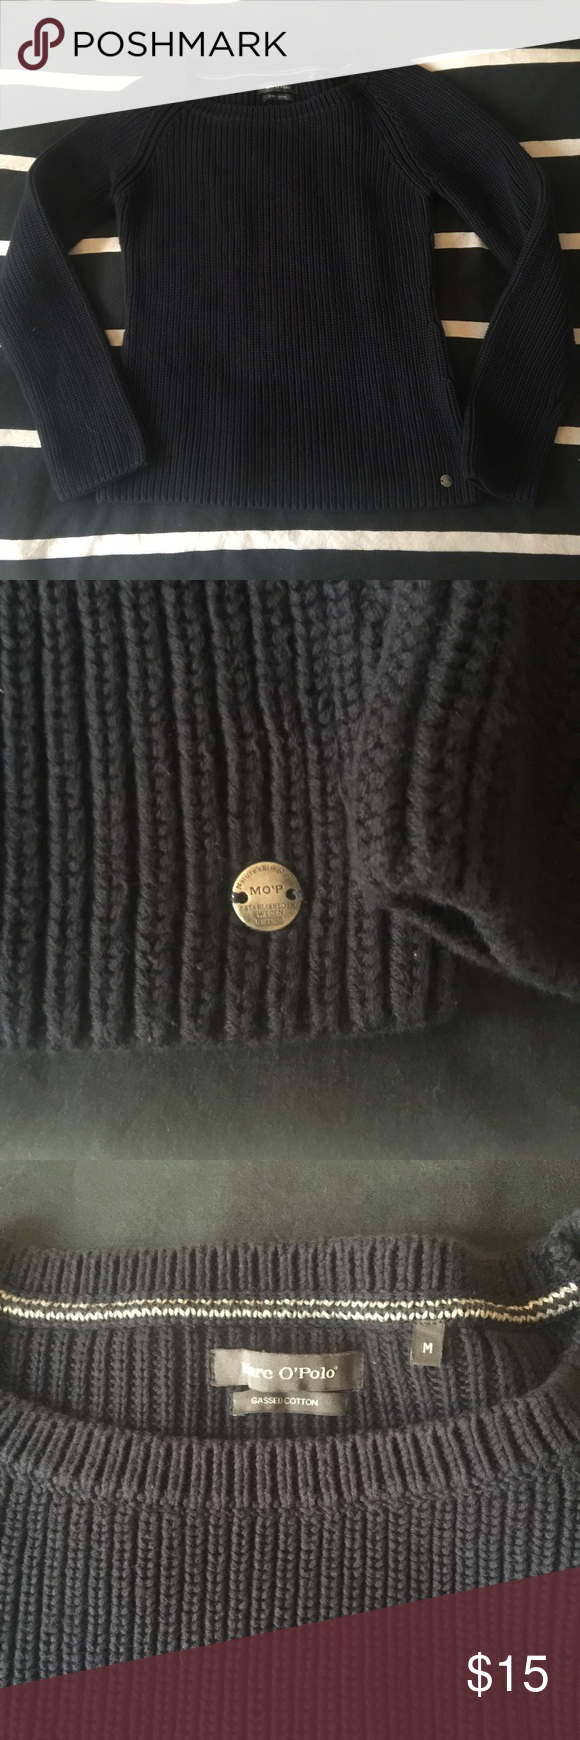 Marco Polo London brand sweater Amazing quality! It looks